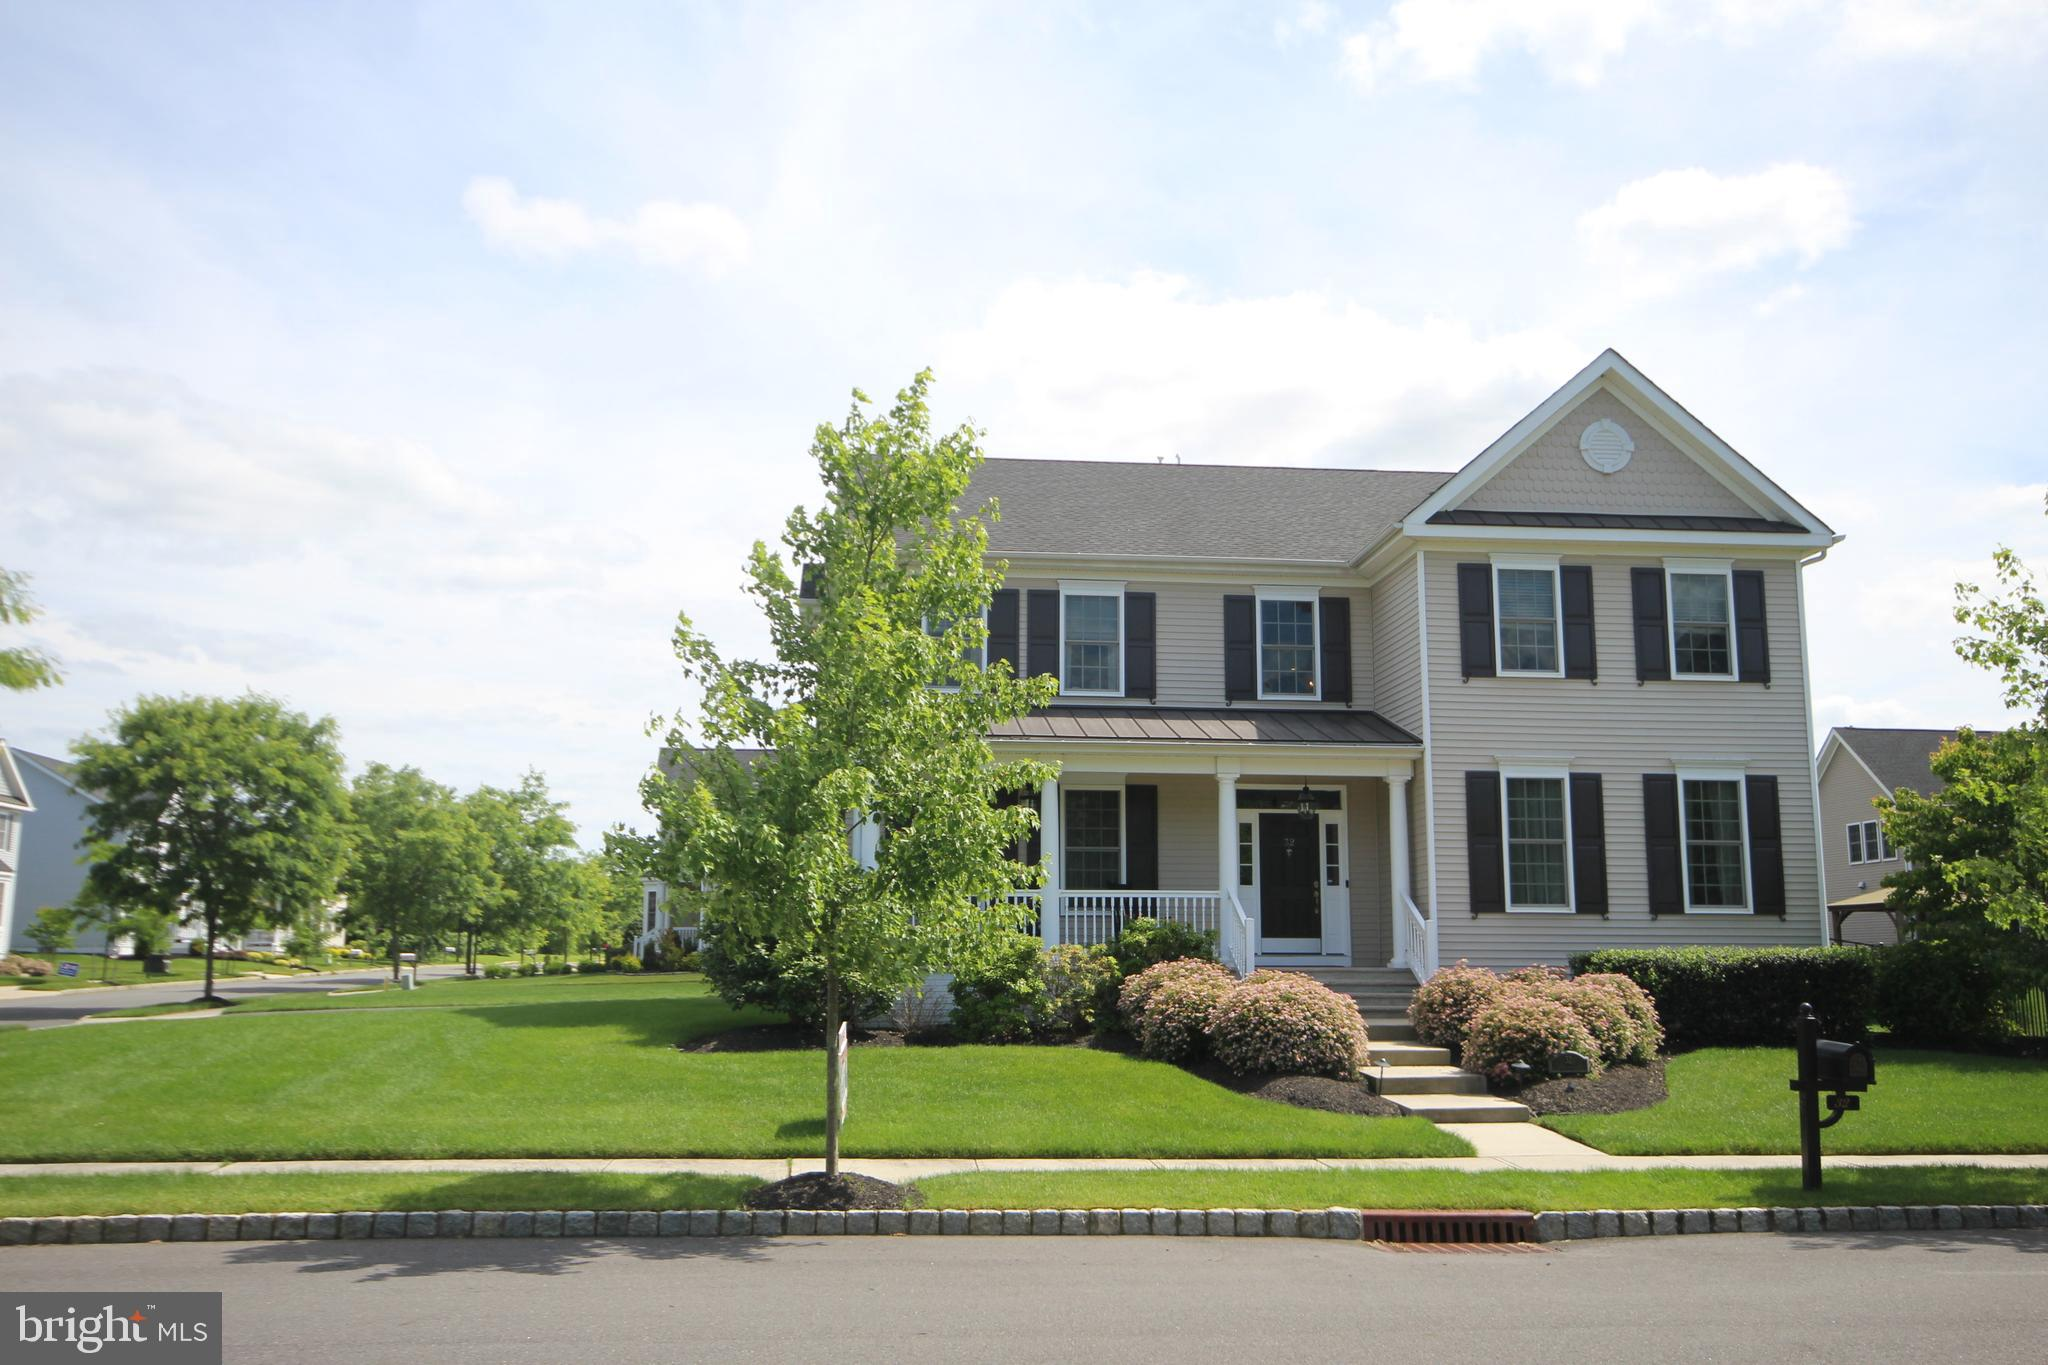 32 COLEMANTOWN DRIVE, CROSSWICKS, NJ 08515